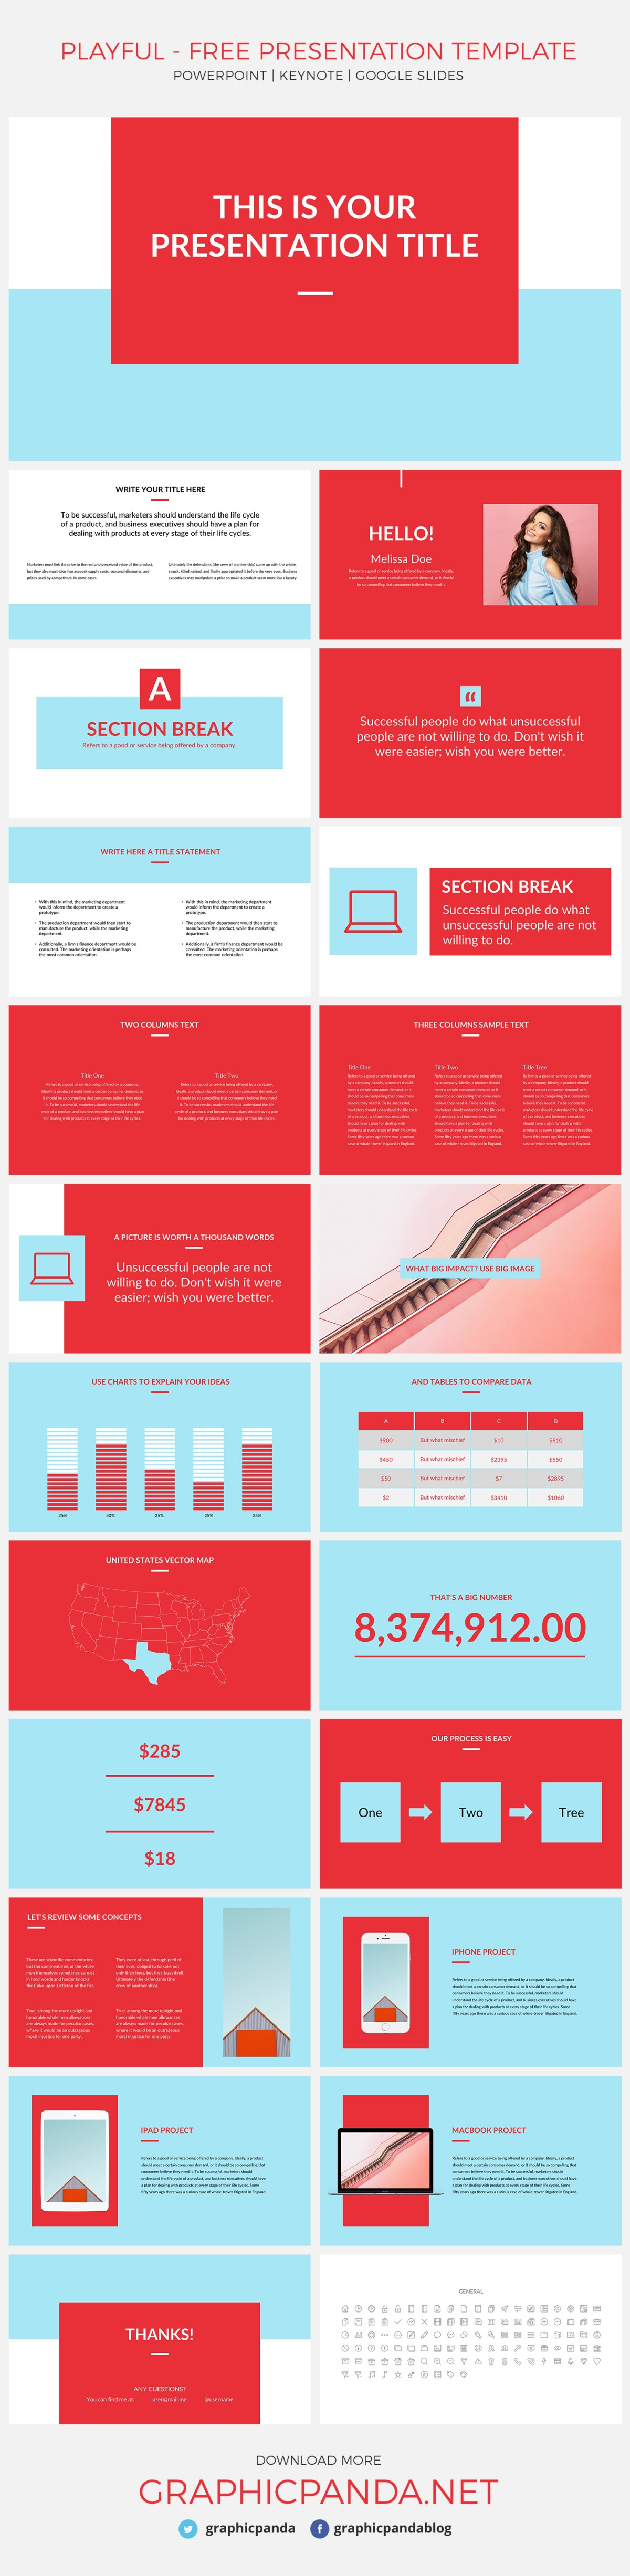 Playful free presentation template powerpoint keynote google slides playful free presentation template for powerpoint apple keynote and google slides is a colorful toneelgroepblik Gallery